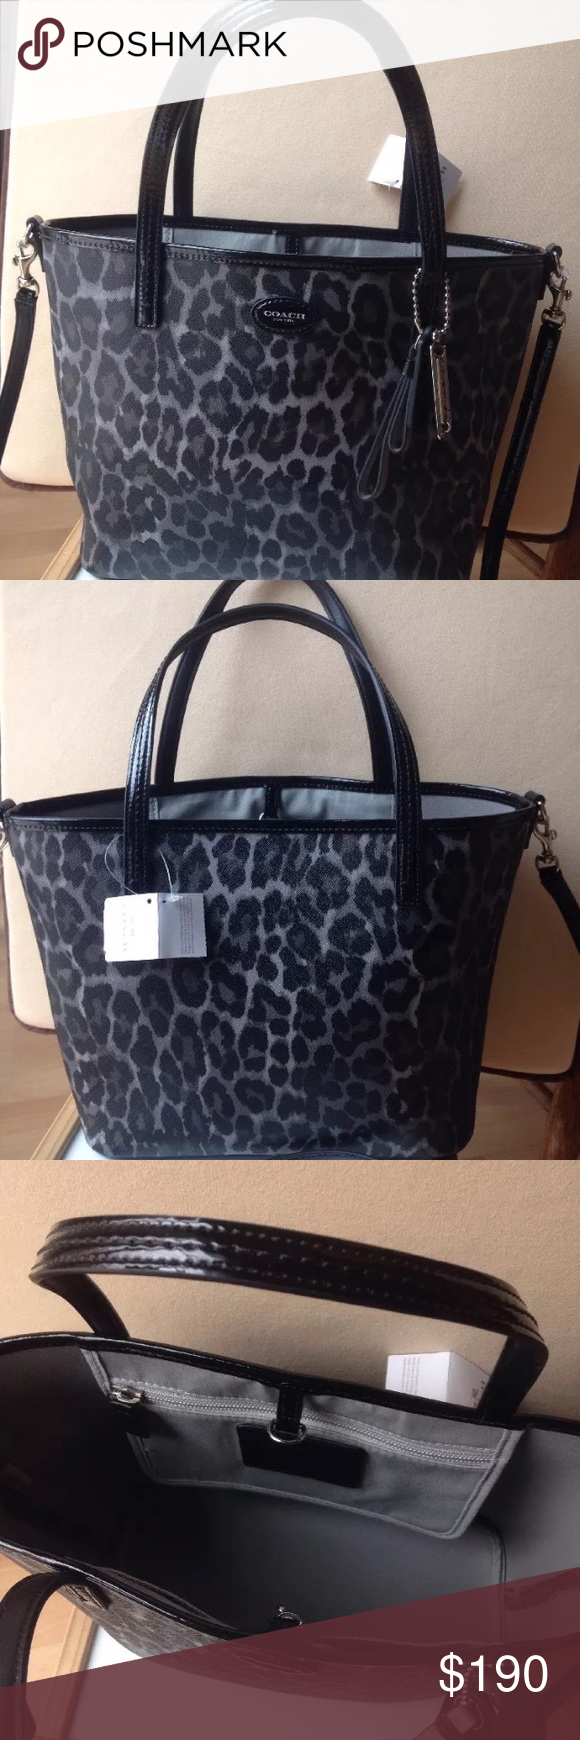 846aa08530ce 🎀new coach black leopard ocelot tote purse🎀 Can be carried on the arm or  shoulder using the long strap. The long strap is removable.